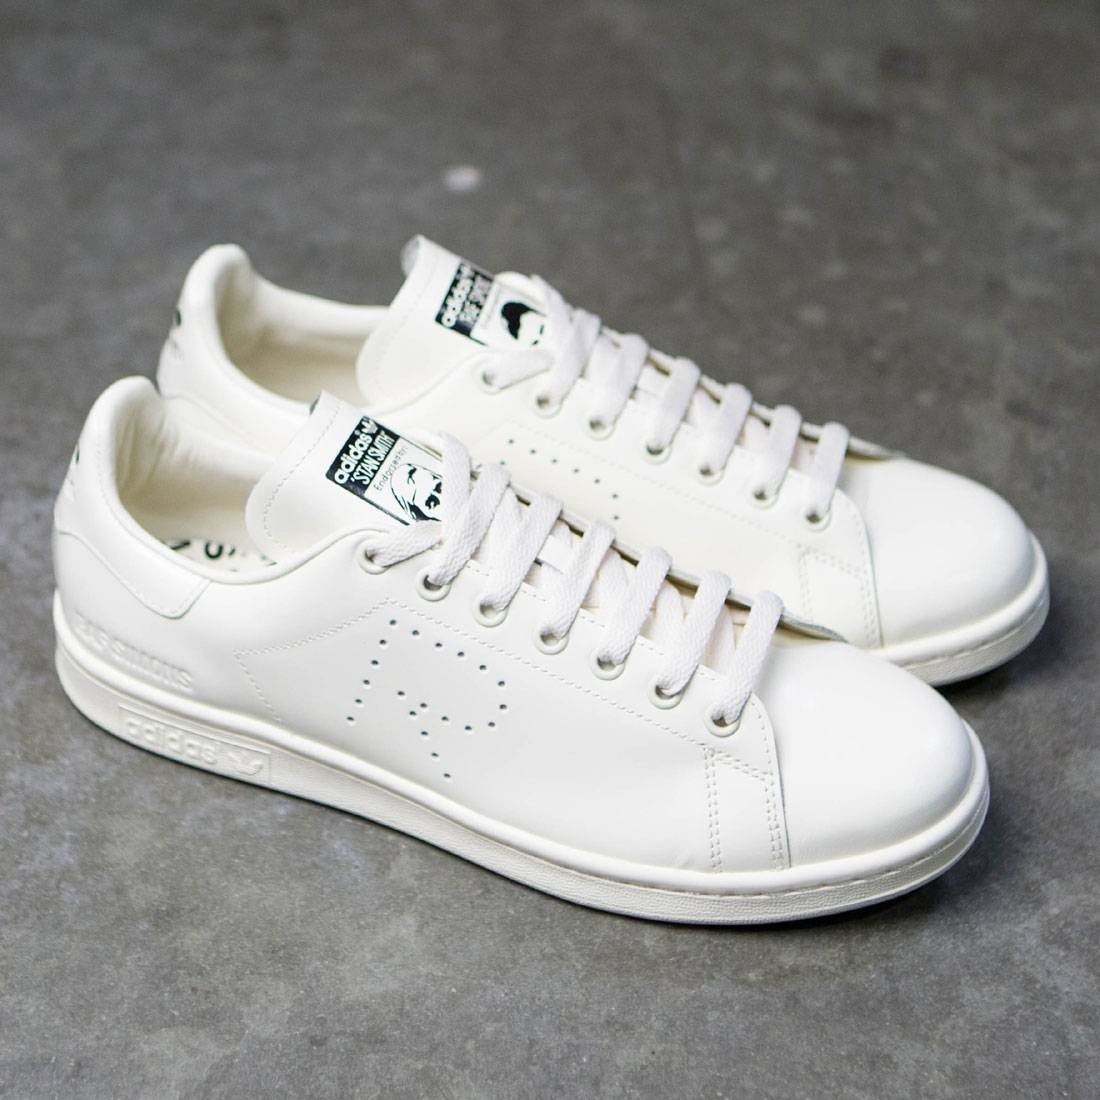 df6e1c5a86a6 Adidas x Raf Simons Men Stan Smith (white   cream white   core black)